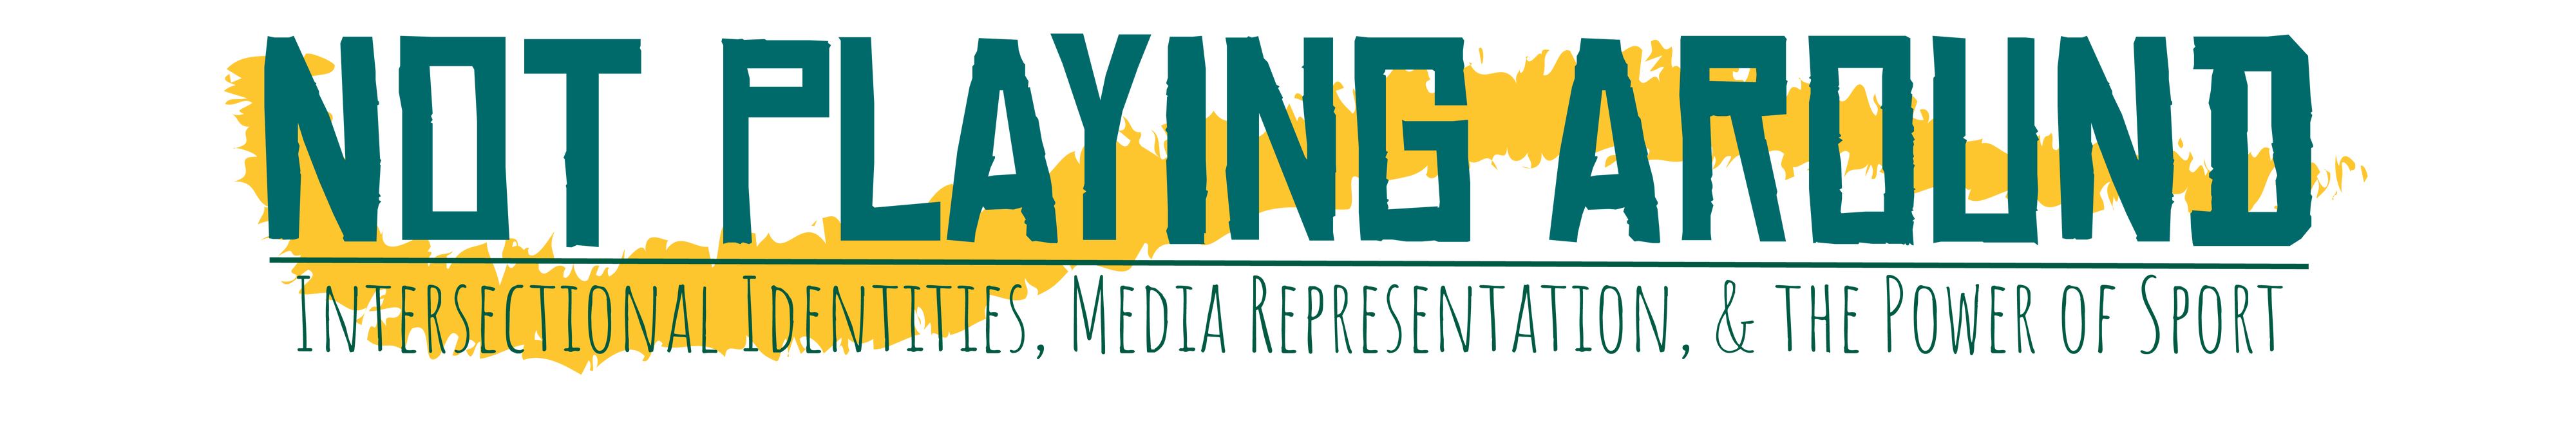 Not Playing Around: Intersectional Identities, Media Representation, and the Power of Sport